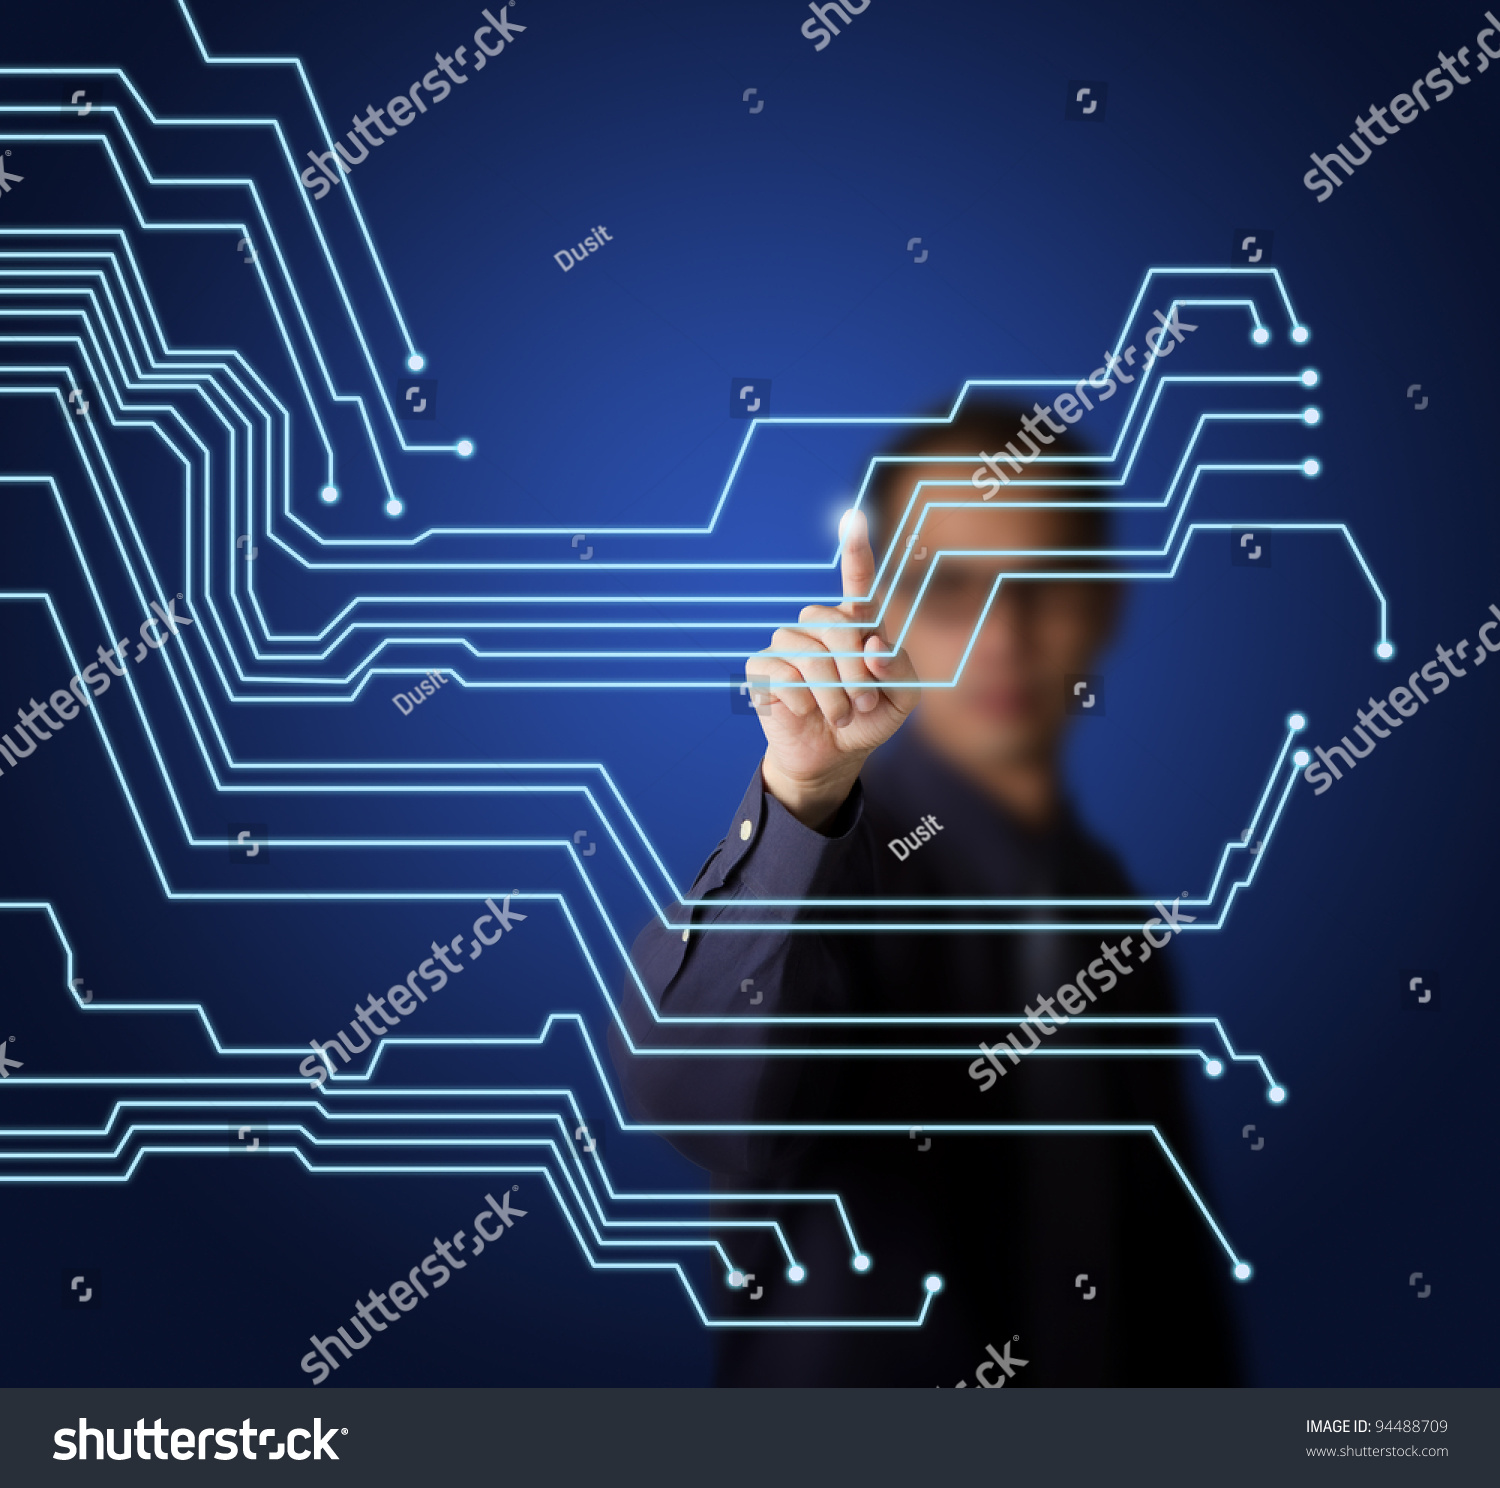 business man pointing virtual electronic circuit stock photo (editbusiness man pointing at virtual electronic circuit board on touchscreen